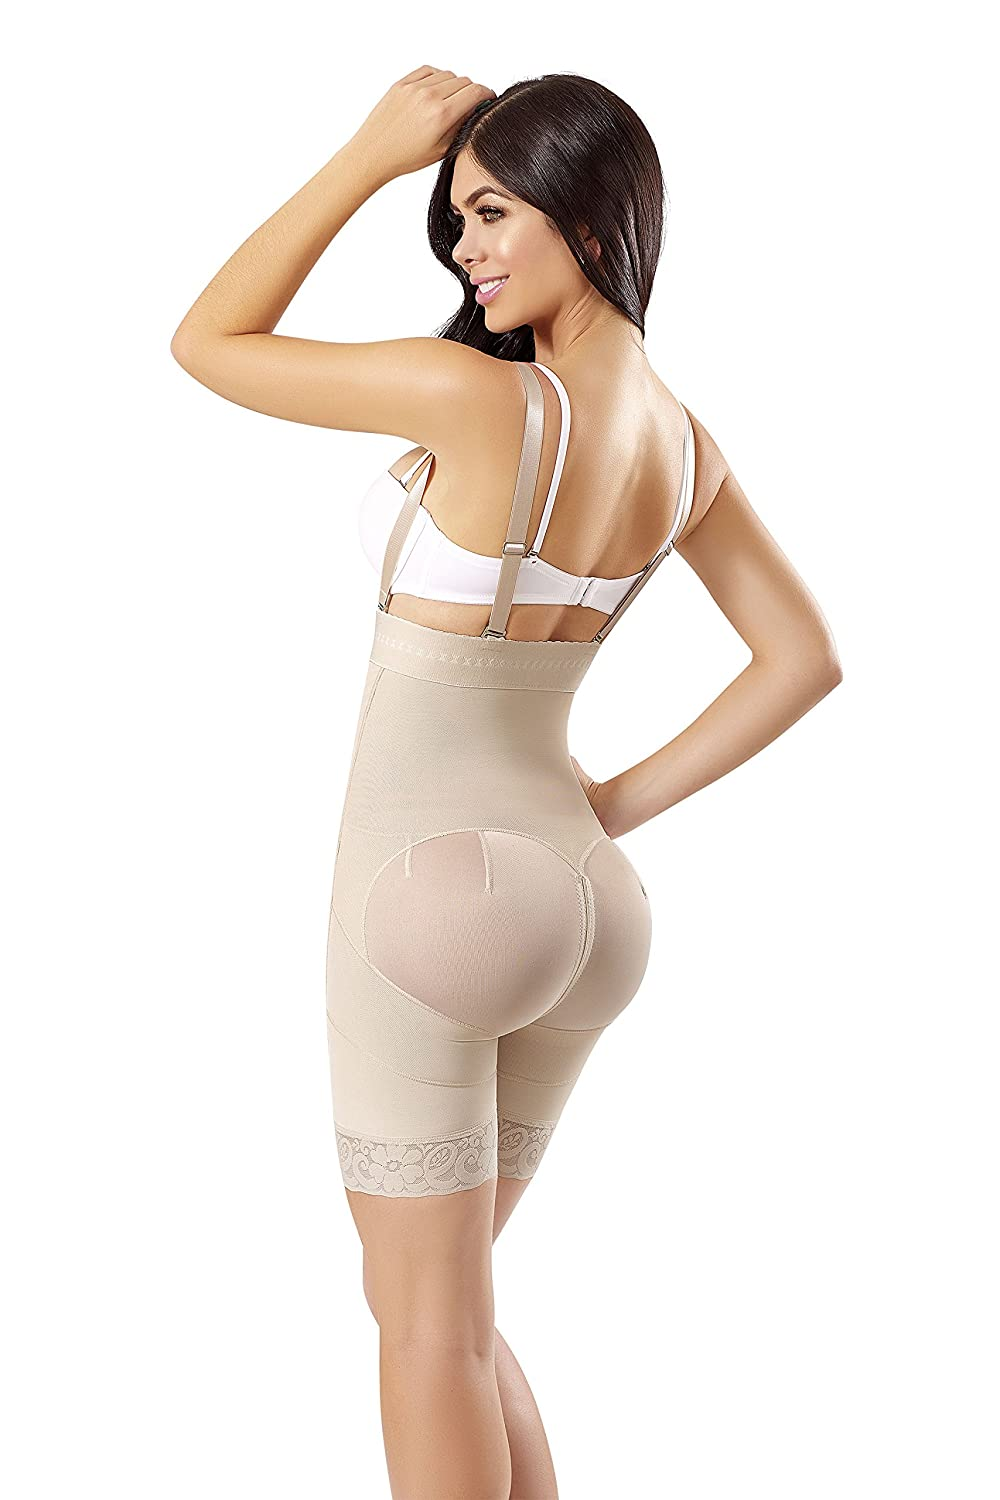 WONDERFUL WF Fajas Colombianas Reductoras y Moldeadoras high Compression Garments After Liposuction Strapless Bodysuit 0462 at Amazon Womens Clothing store ...